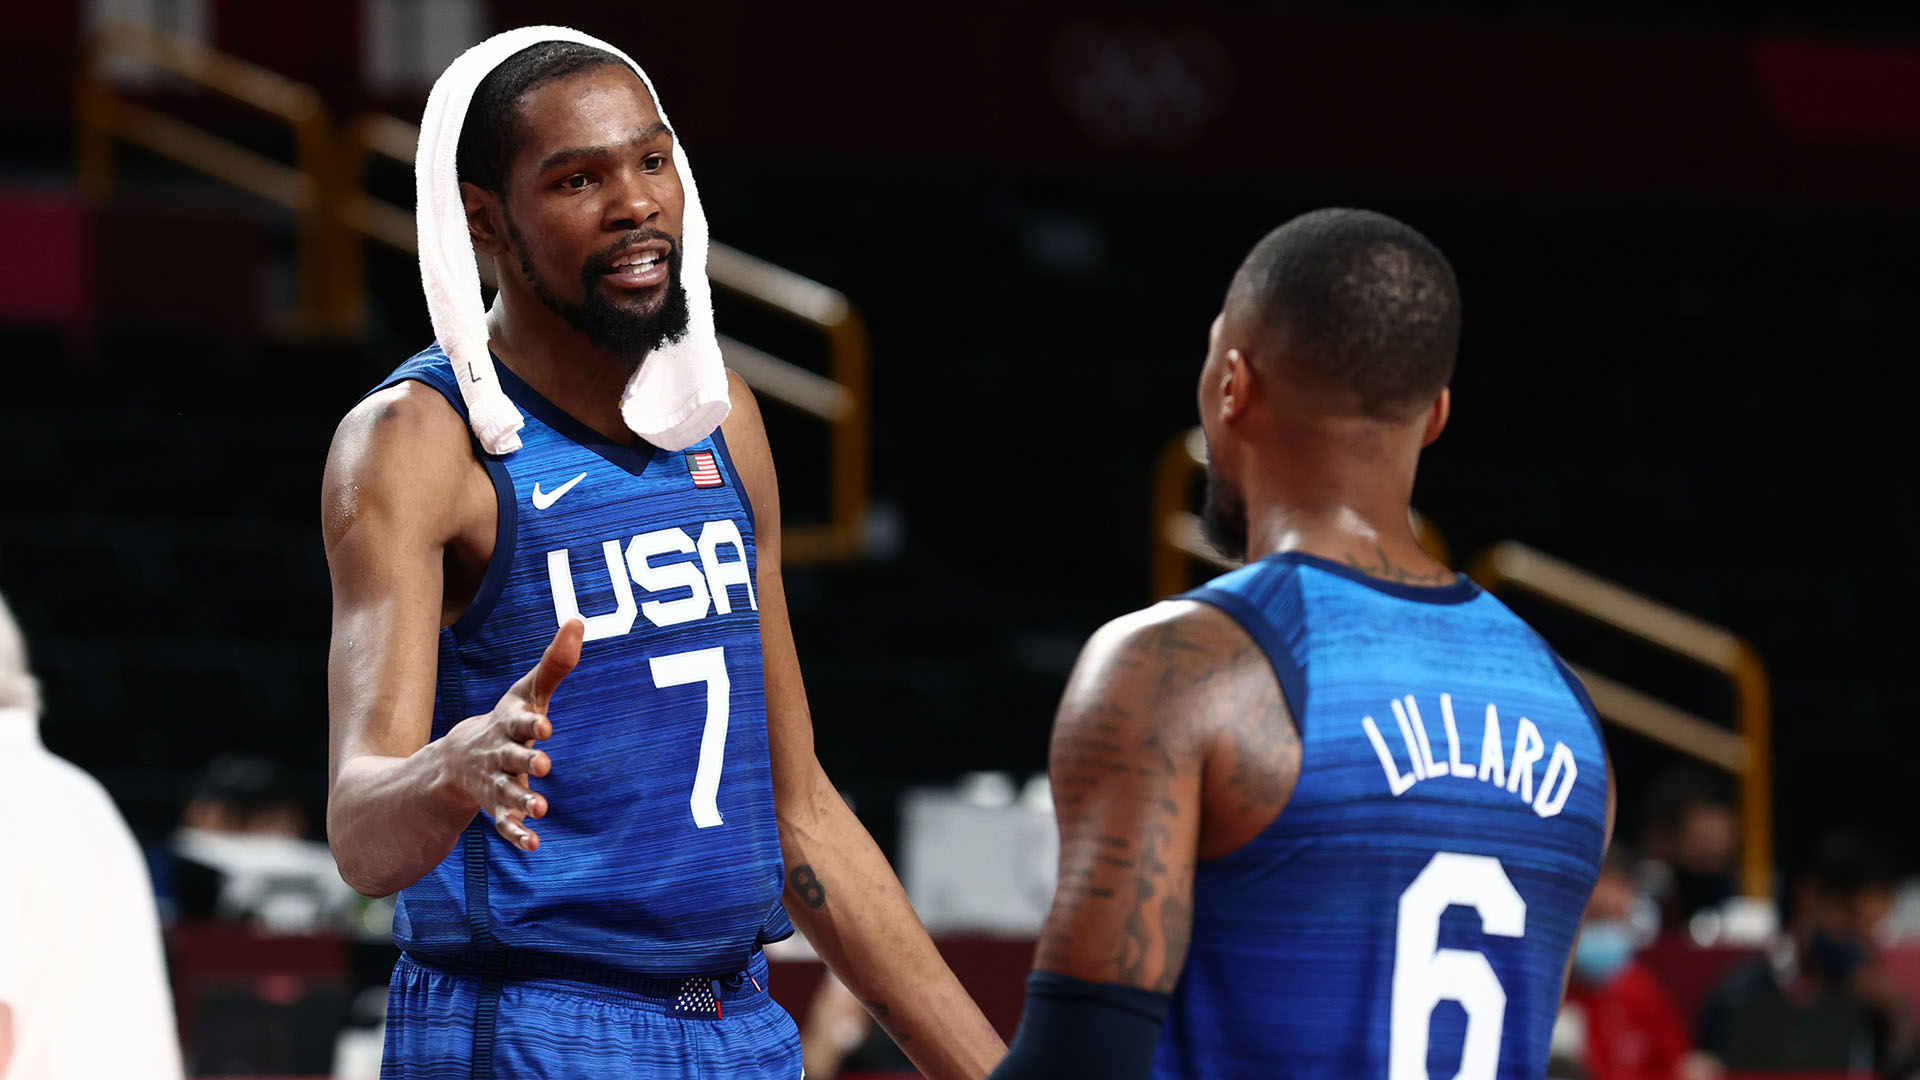 US faces Australia in Olympic semifinals (12:15 a.m. ET)